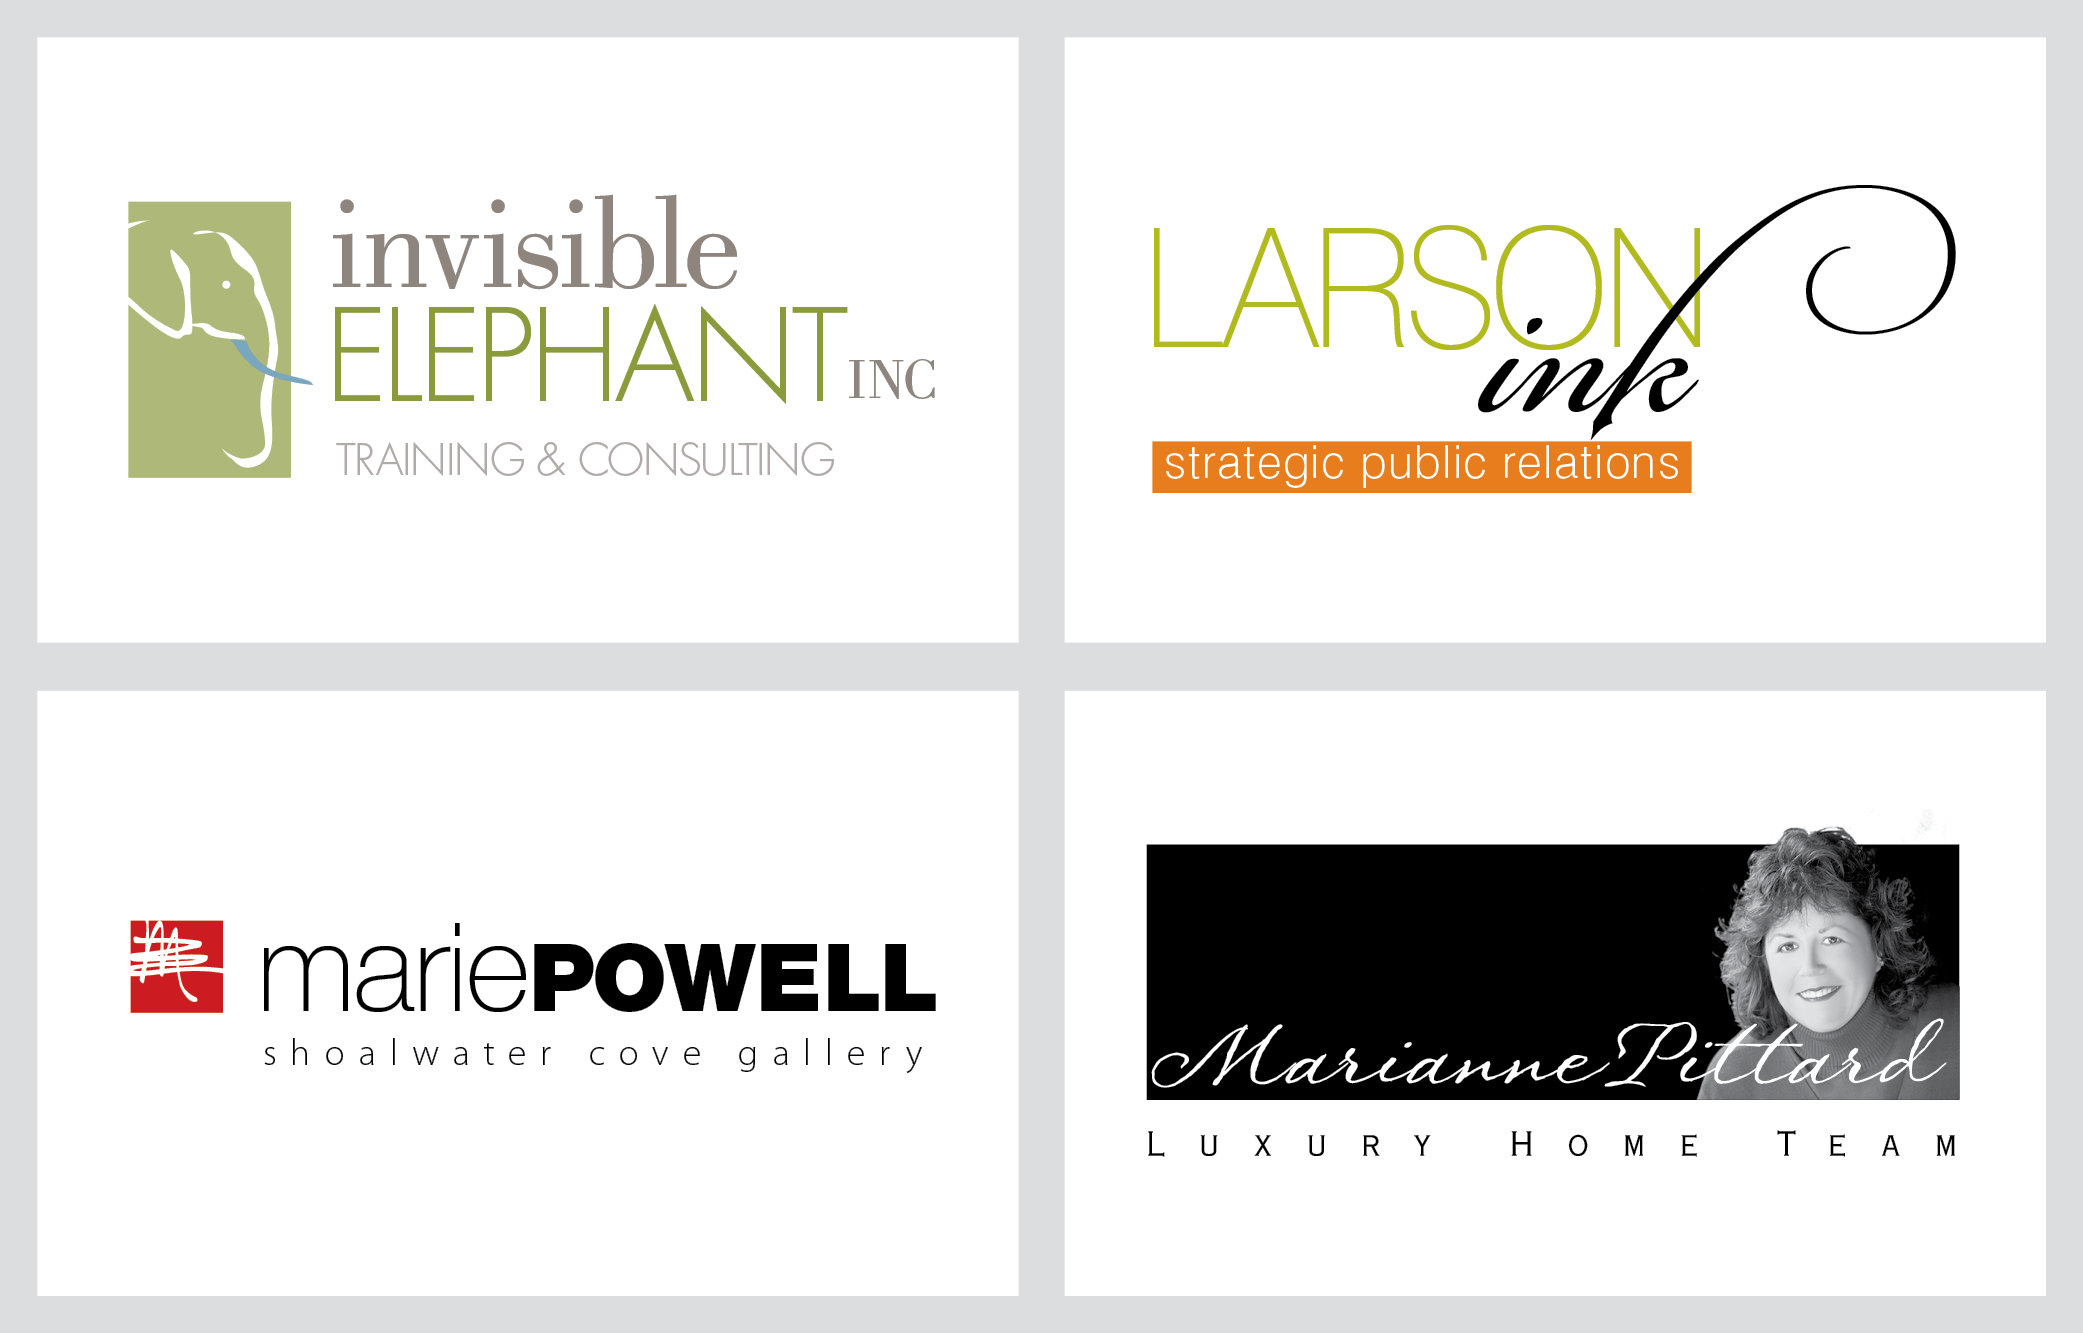 invisible elephant, larson inc, marie powell, marianne pittard luxury home team logo examples